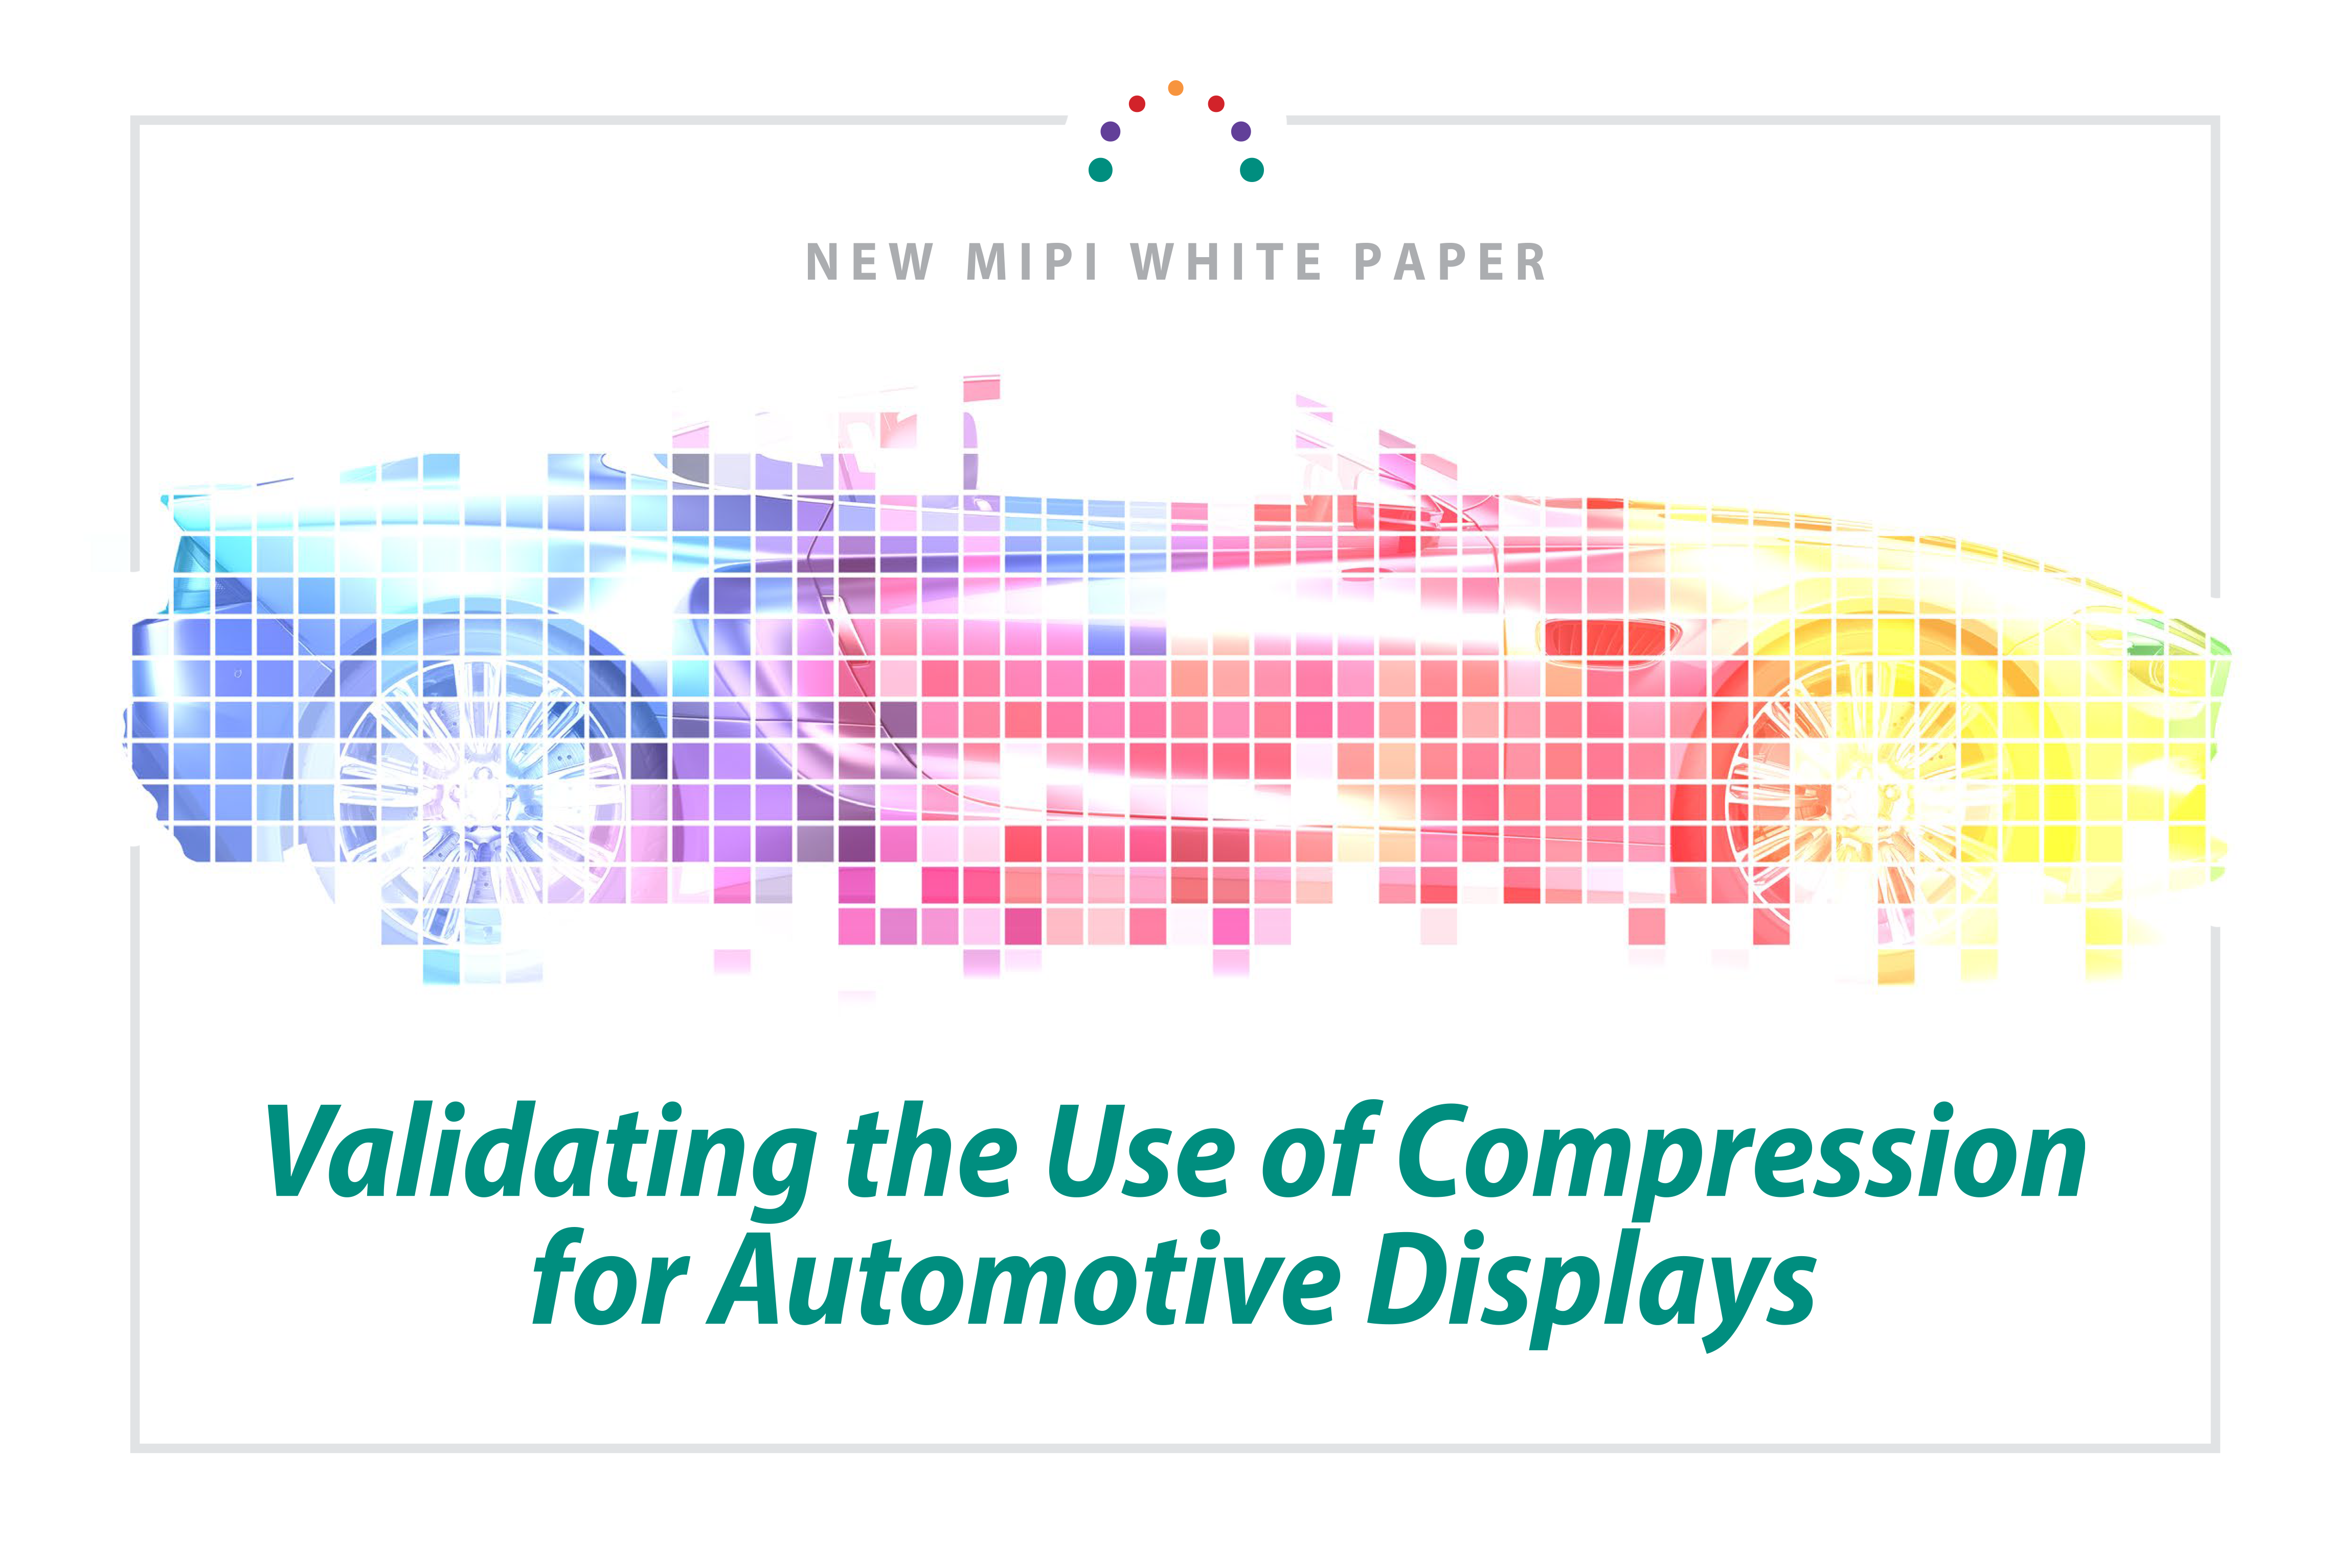 Validating the Use of Compression for Automotive Displays white paper cover